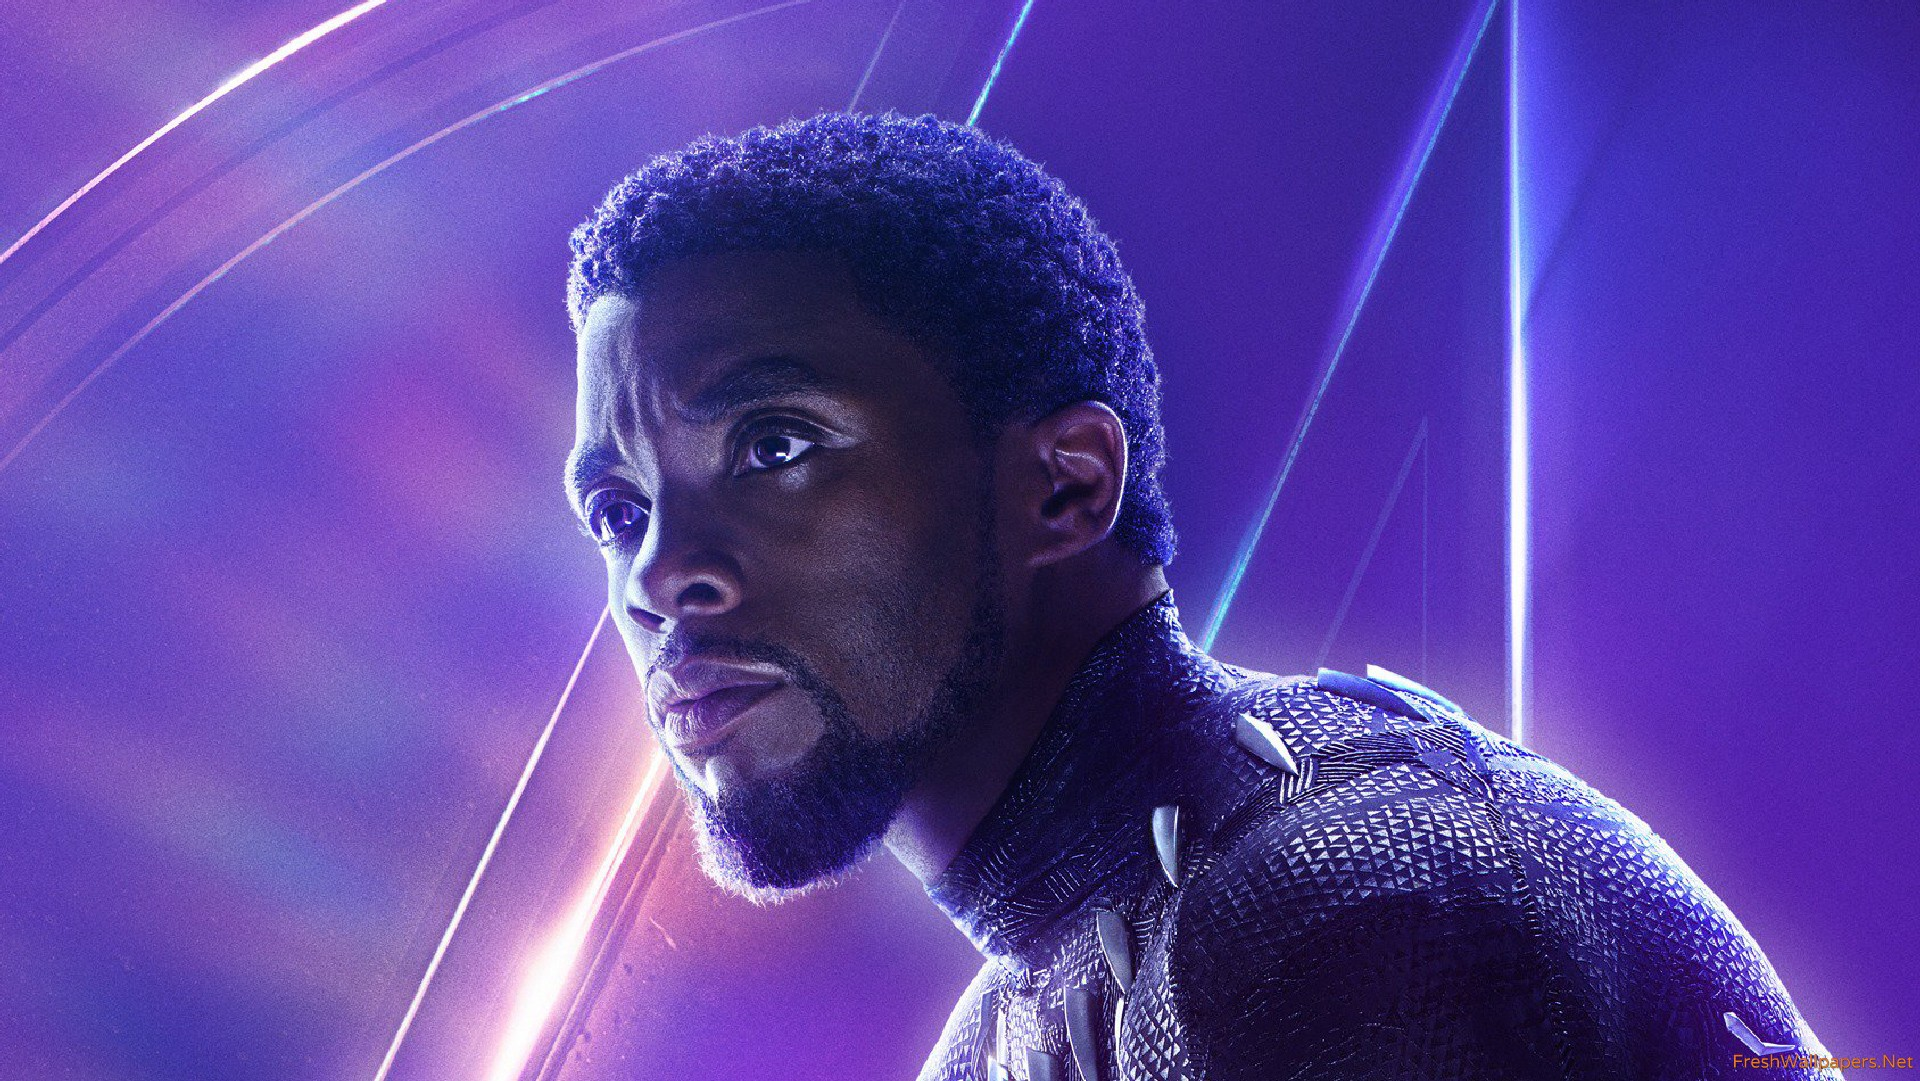 Black Panther In Avengers Infinity War New Poster wallpaper